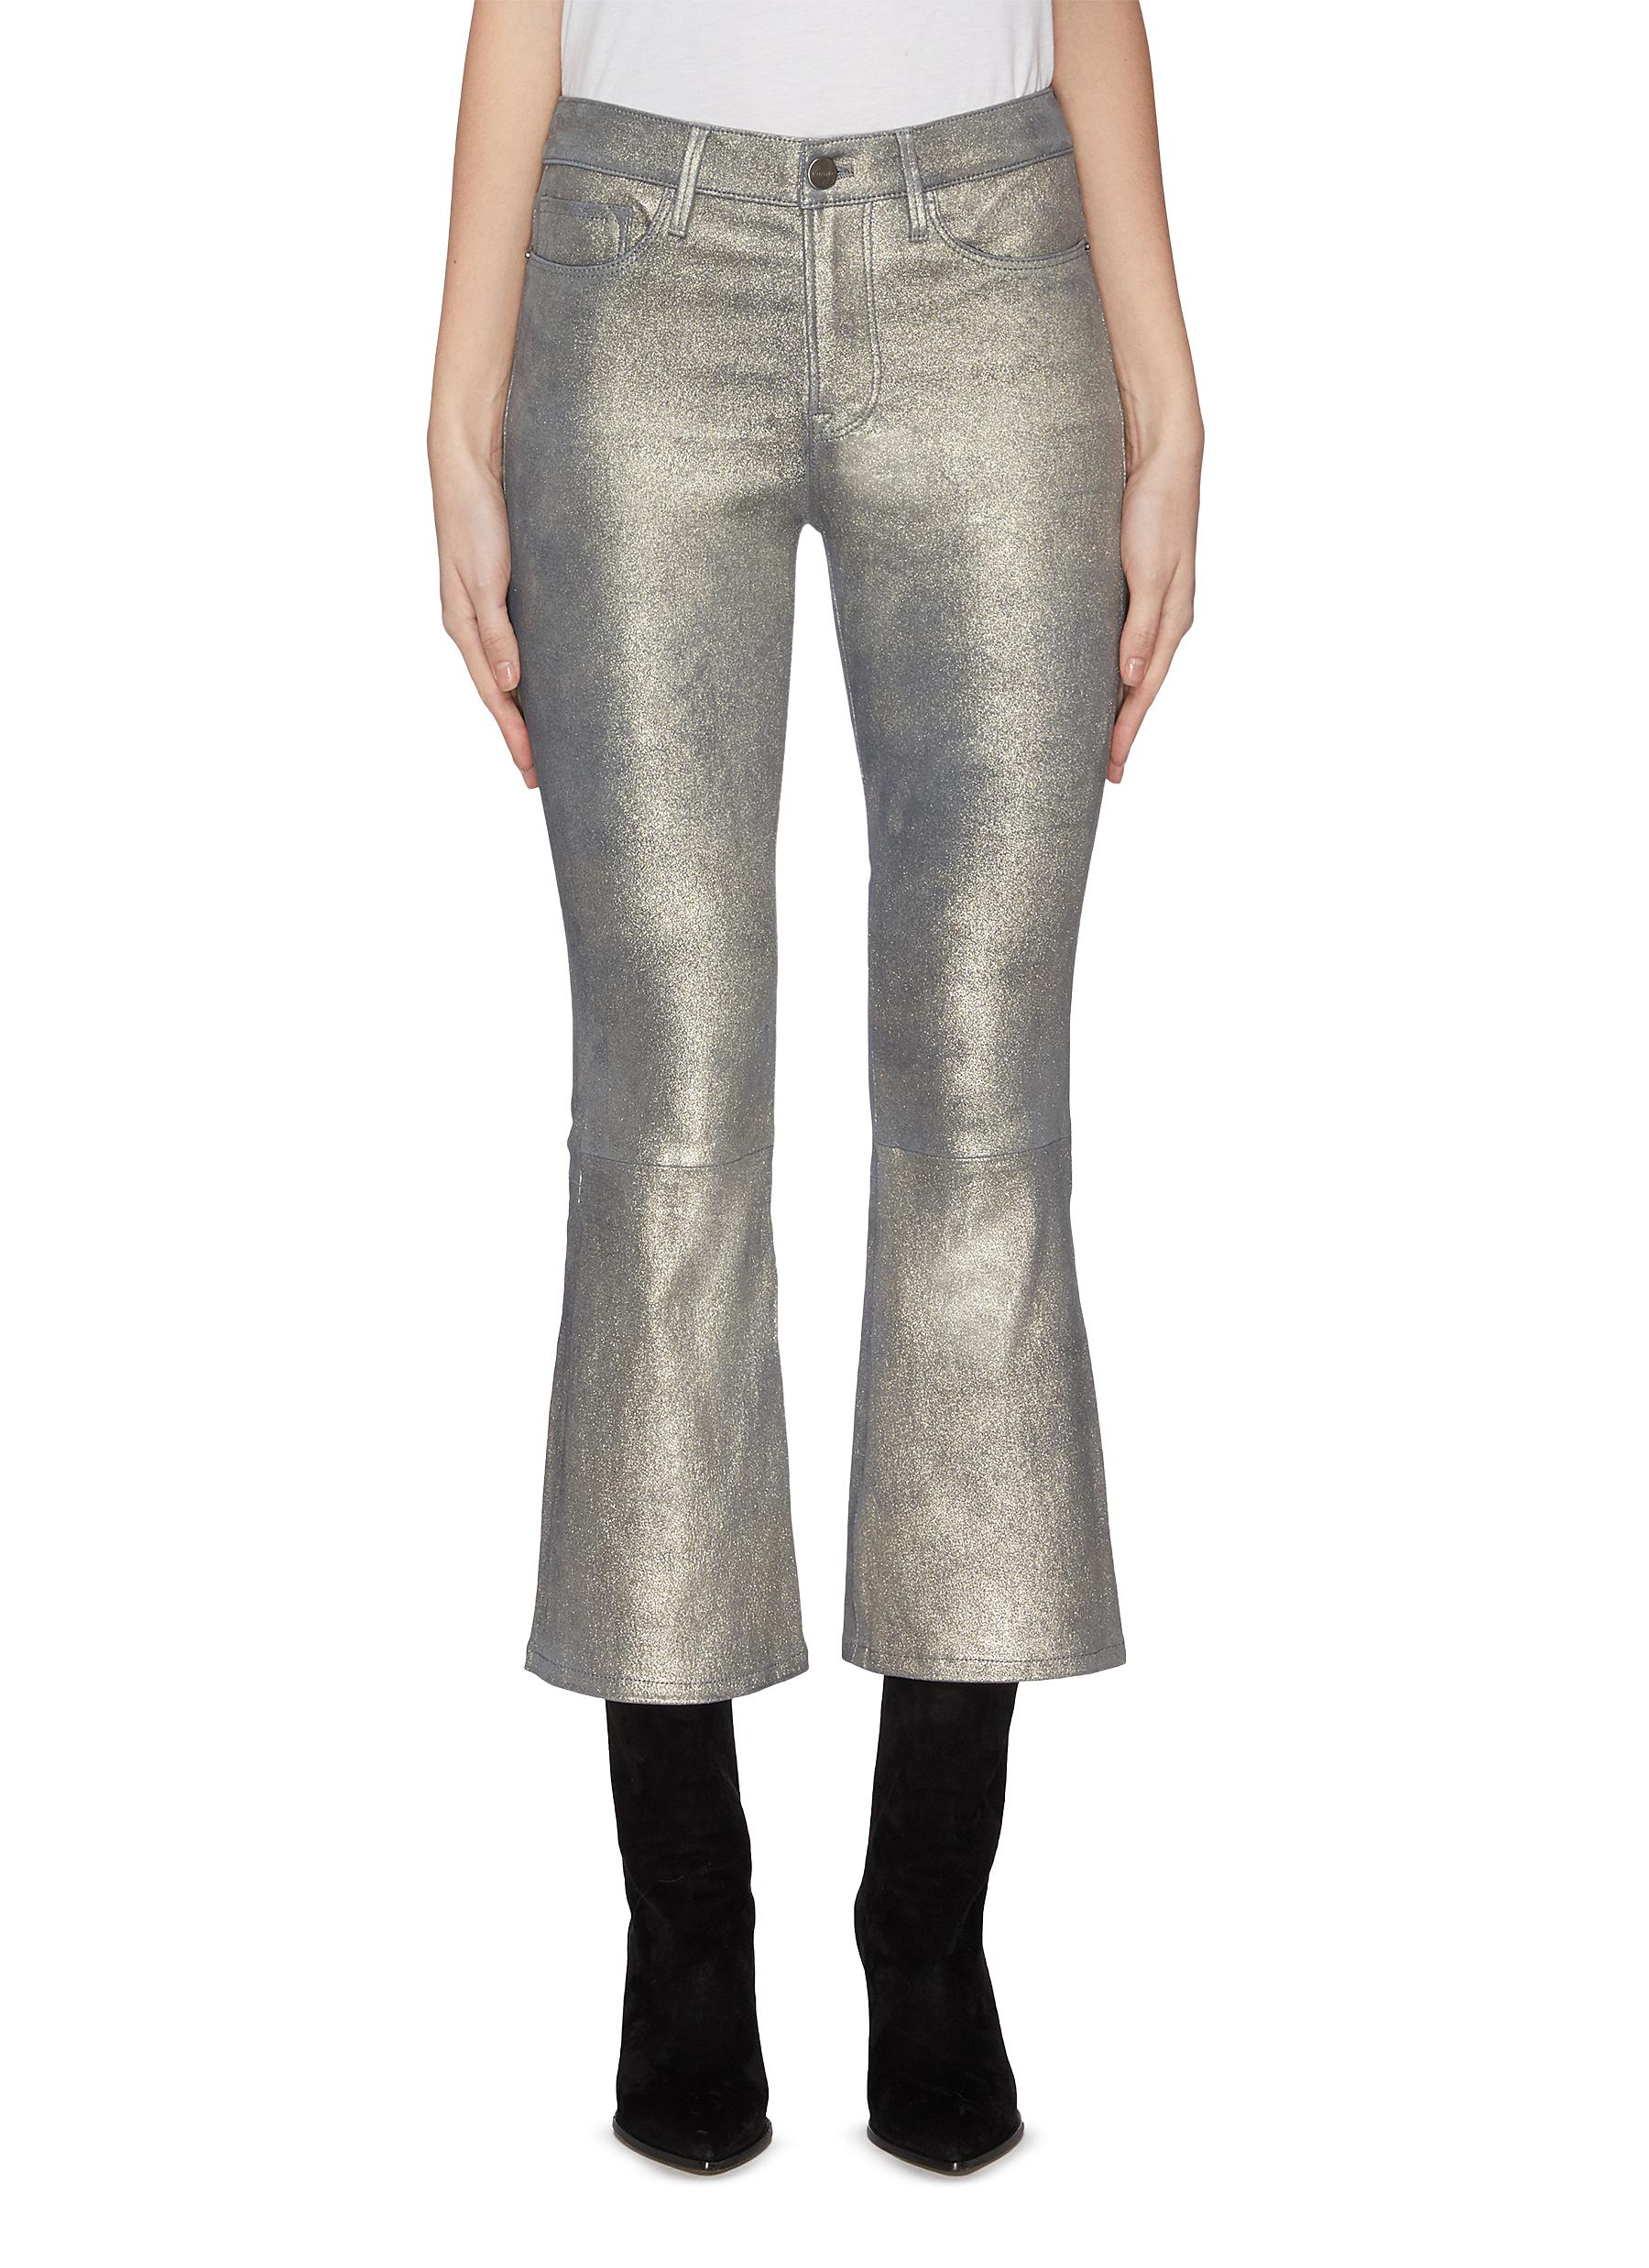 Buy Frame Denim Jeans 'Le Crop' leather flared jeans